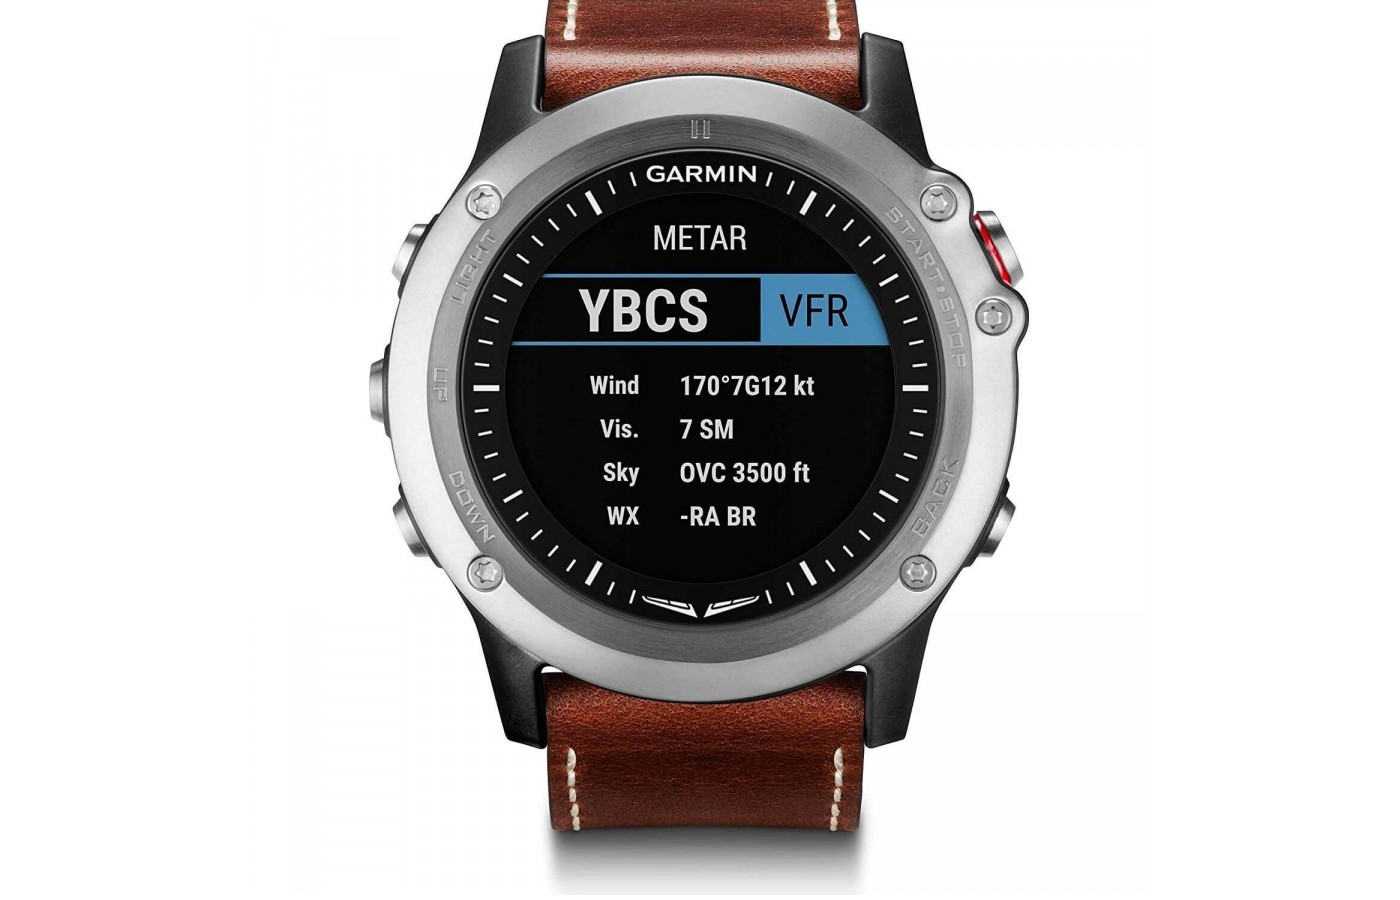 The Garmin D2 Bravo offers METAR & TAF displays